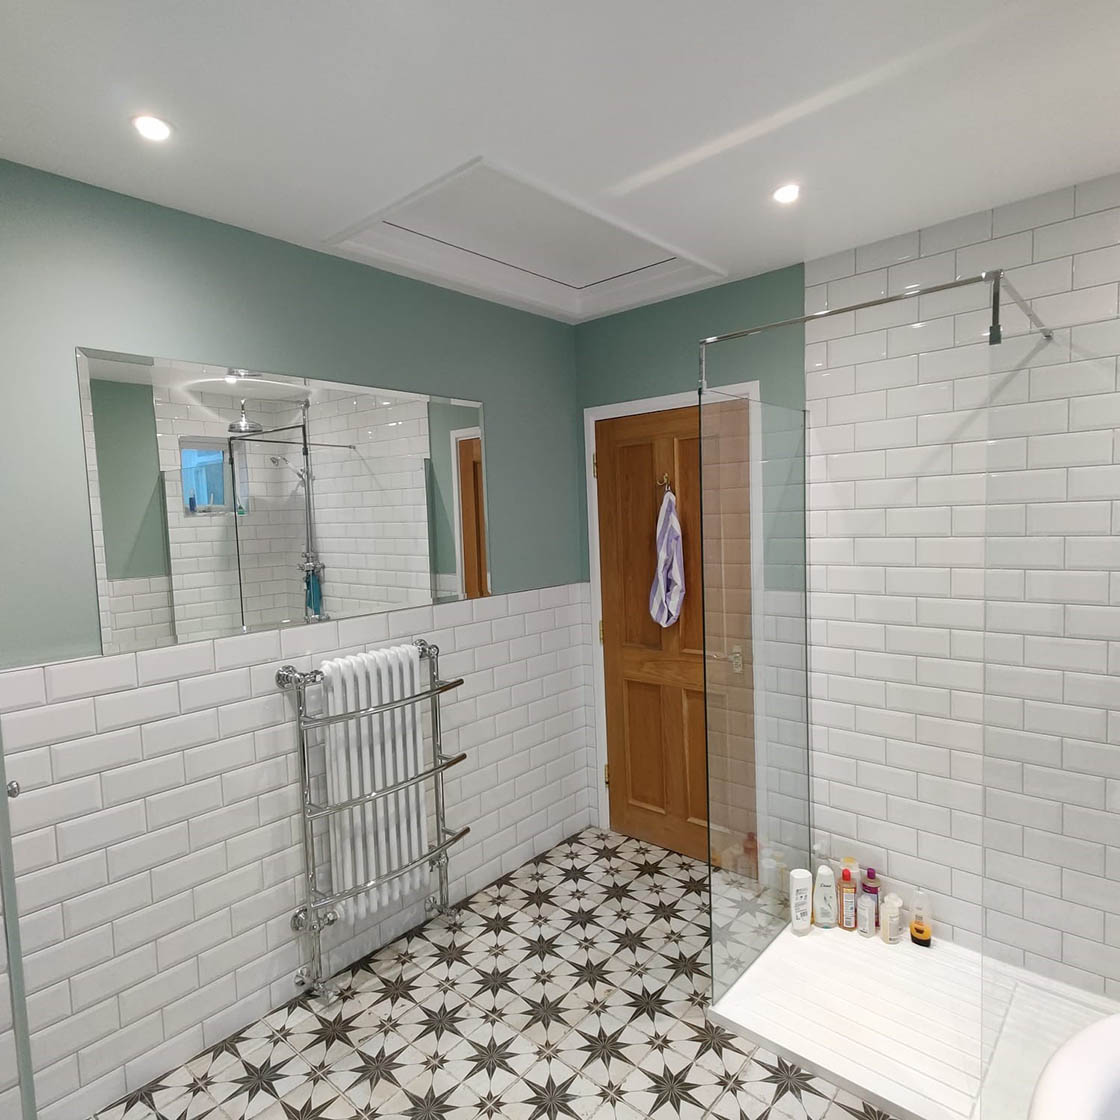 Victorian Style Bathroom Renovation in Redhill Surrey - Revisit Picture 3